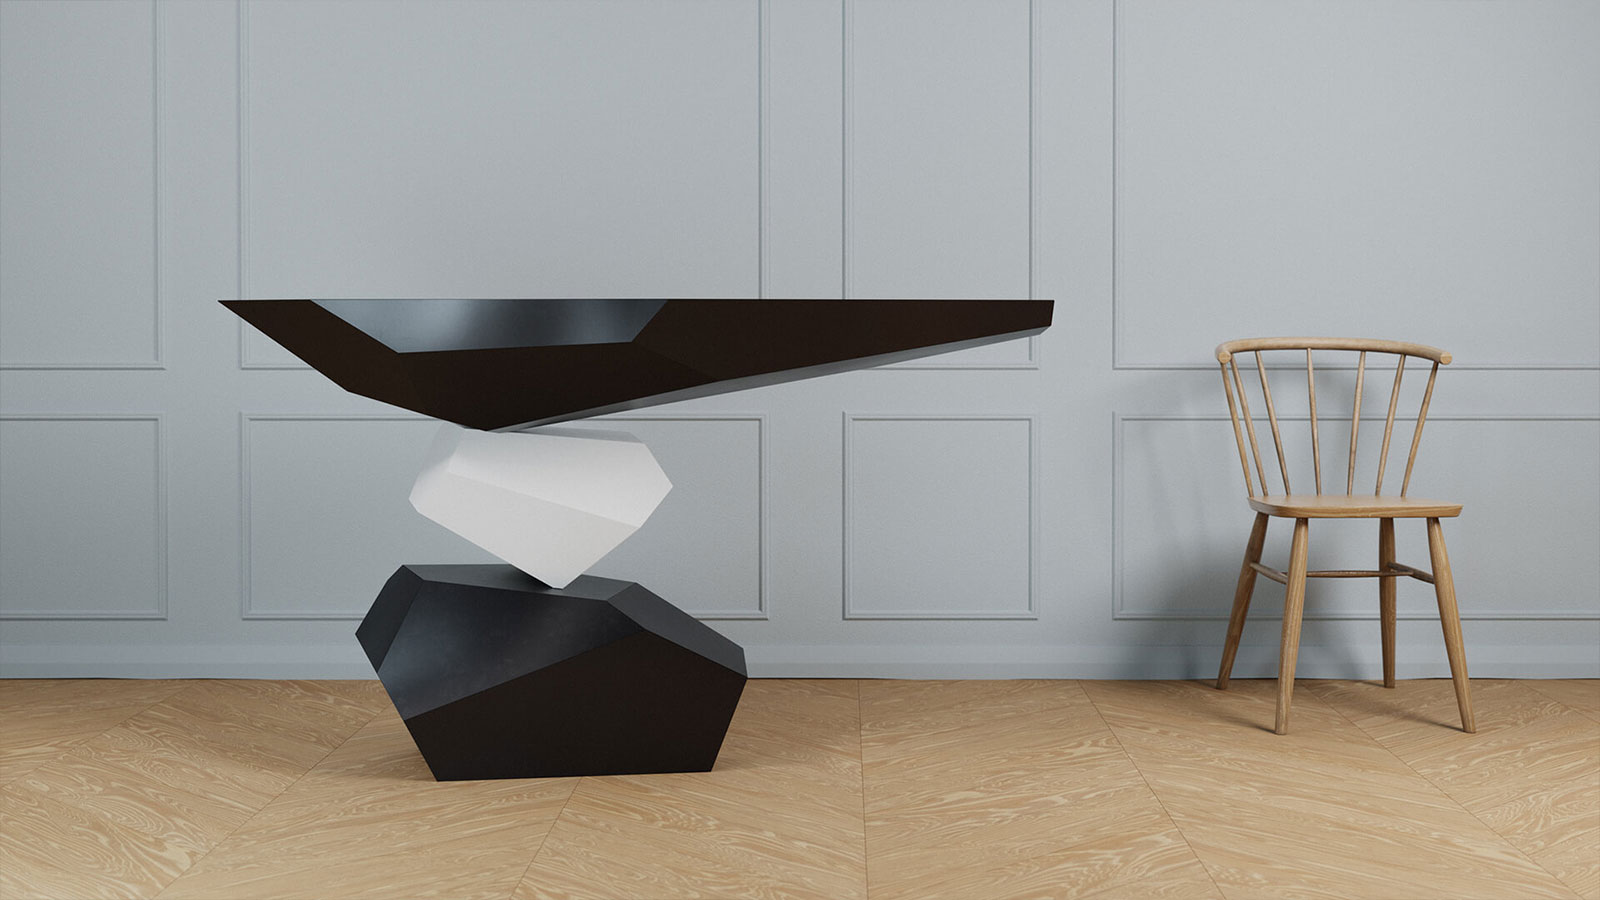 Duffy London's Serenity table appears to defy gravity